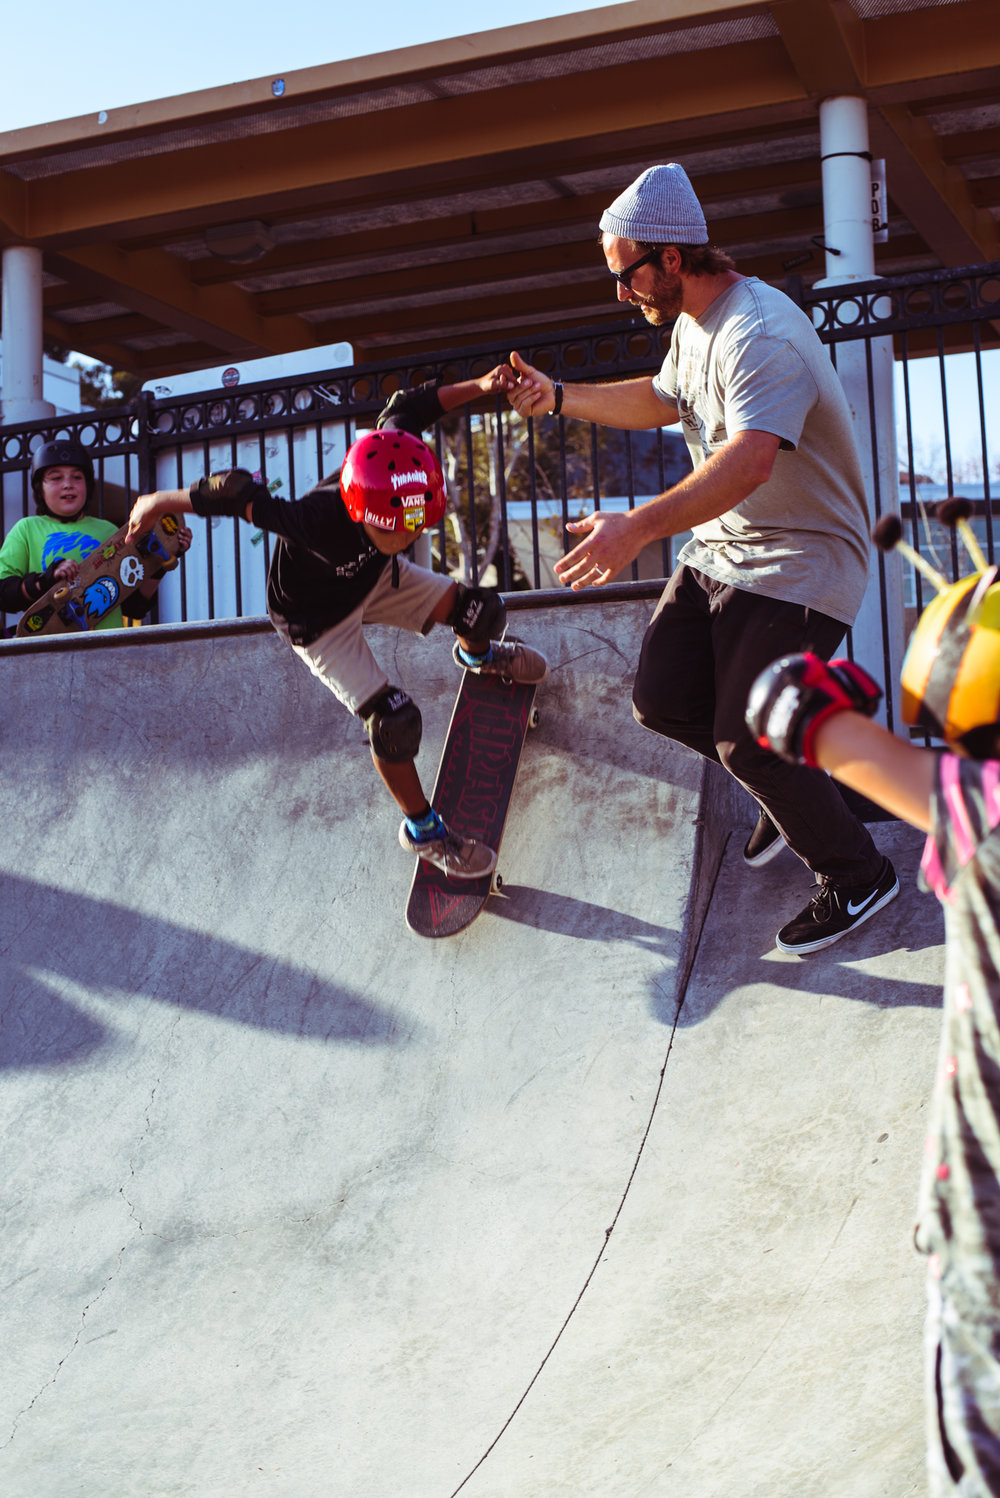 Skateboard Birthday Party-16.jpg